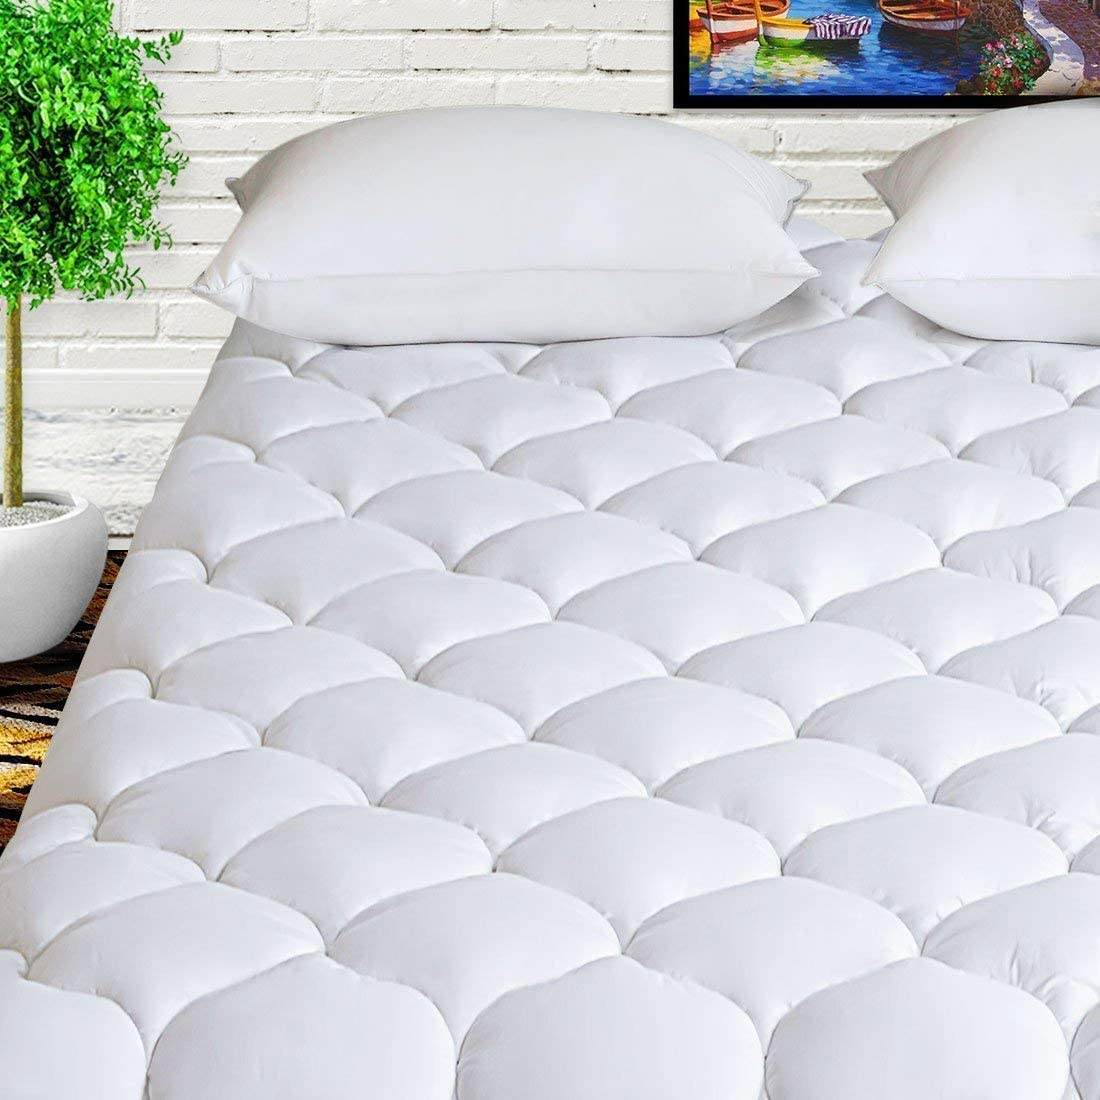 HARNY Mattress Pad Cover Olympic Queen Dedication Pillow Cotton 400TC Size Limited price